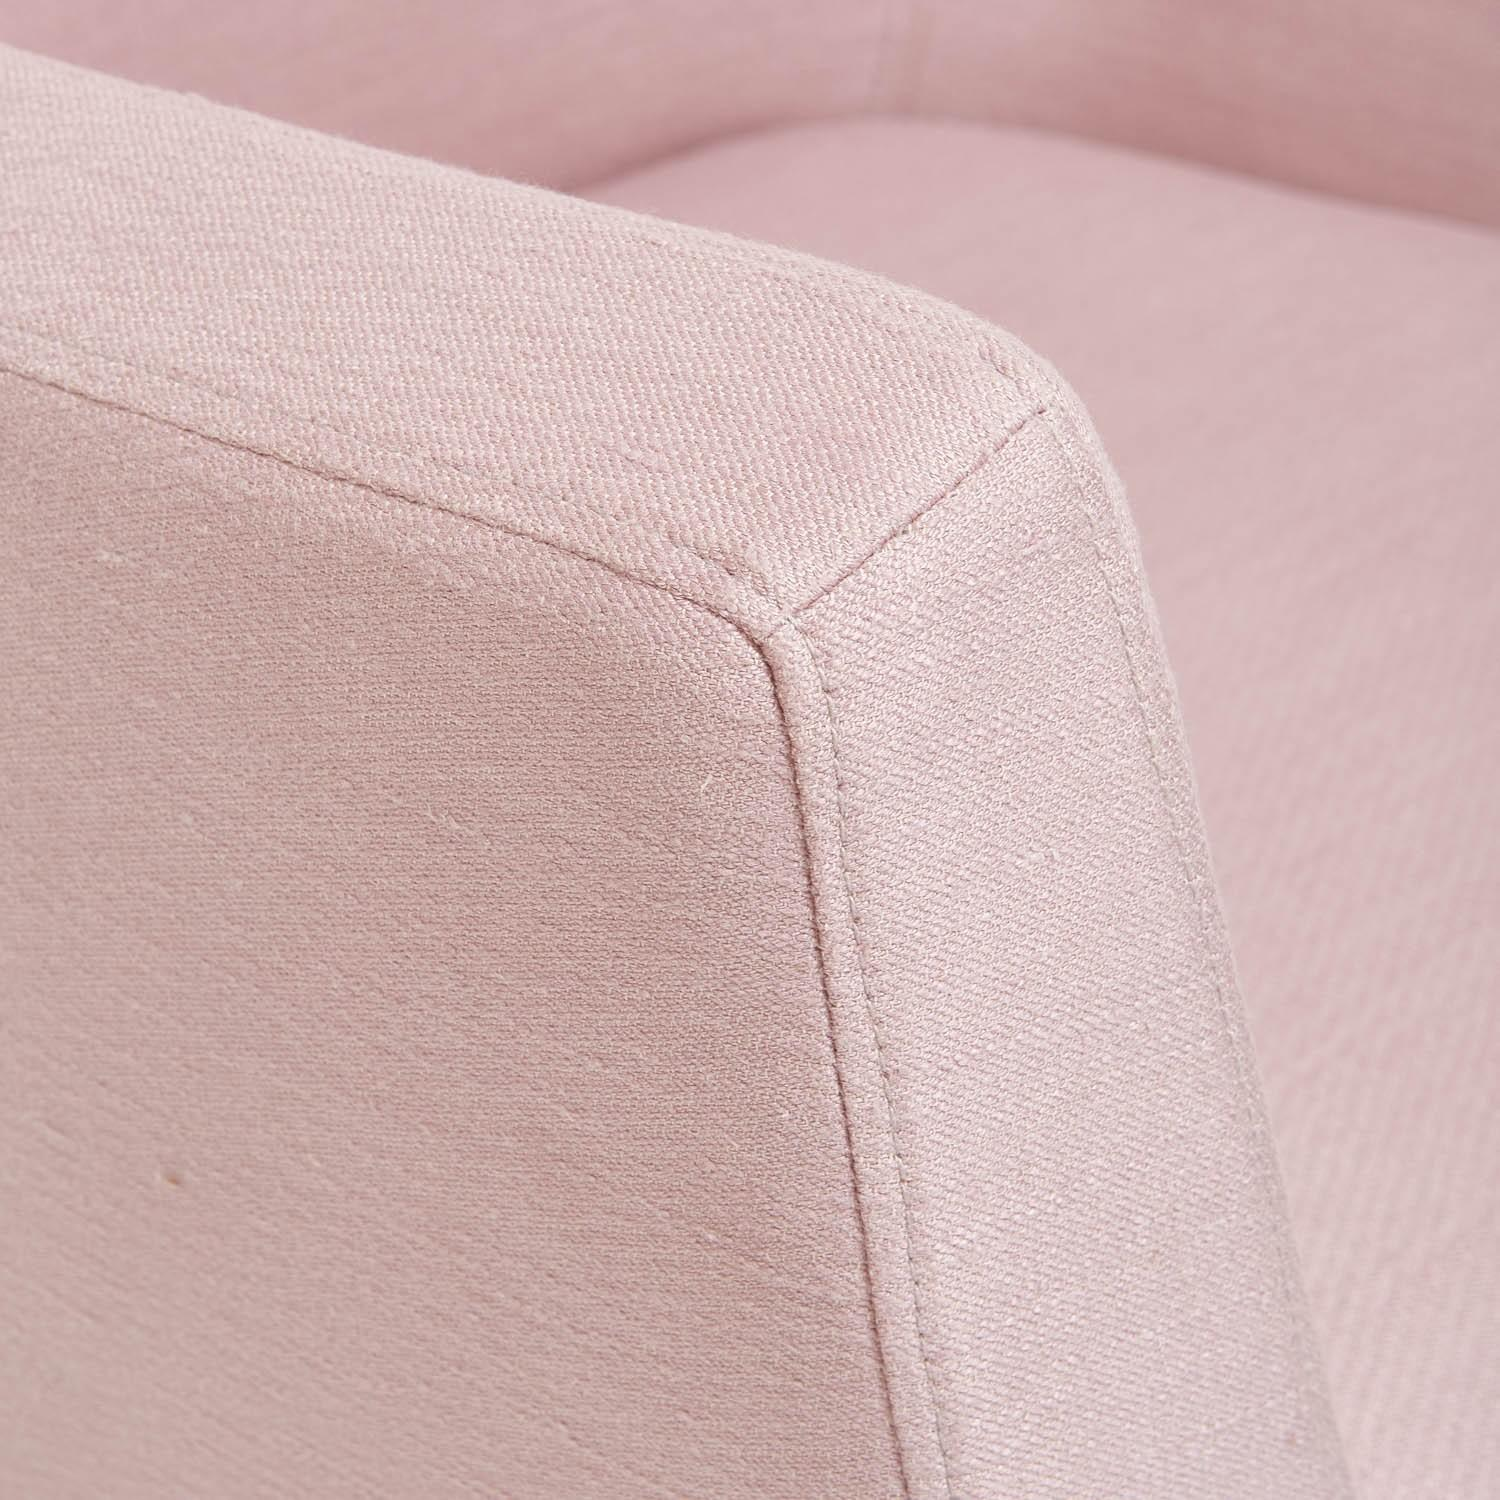 ABC Carpet & Home Pittsburg Pink Armchair - image-4